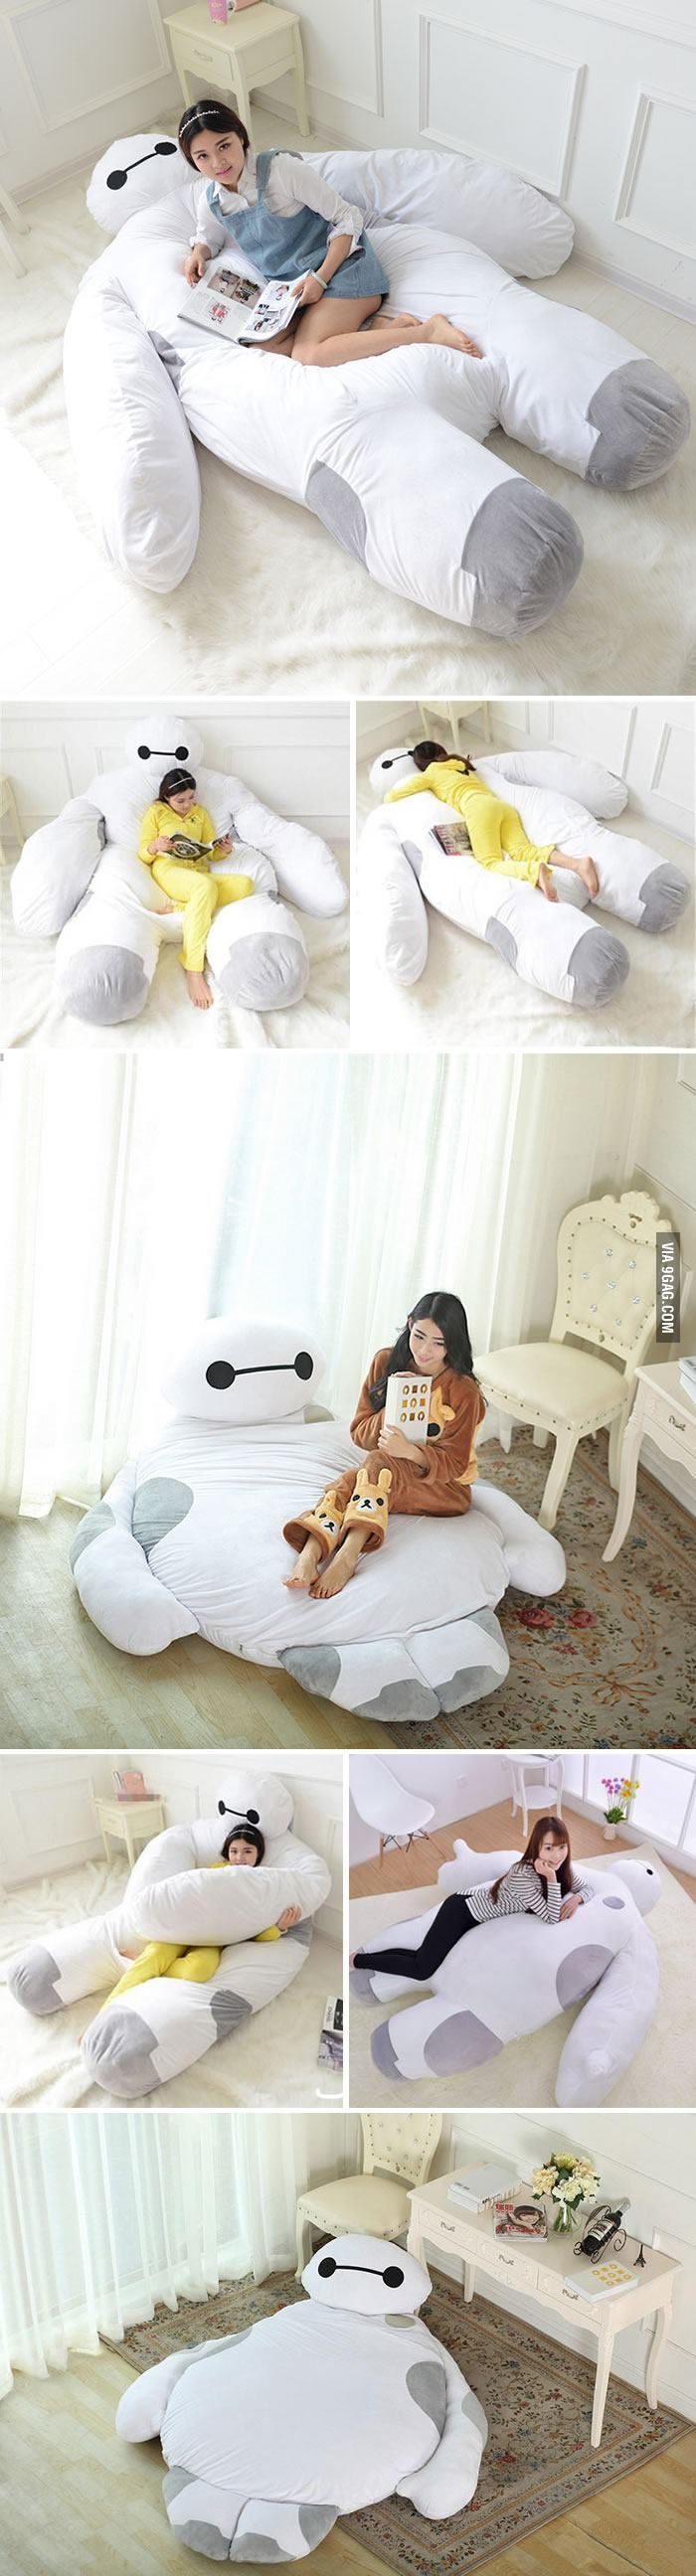 This Life Size Baymax Sofa Bed Is What I Need To Hug While I Sleep! - 9GAG